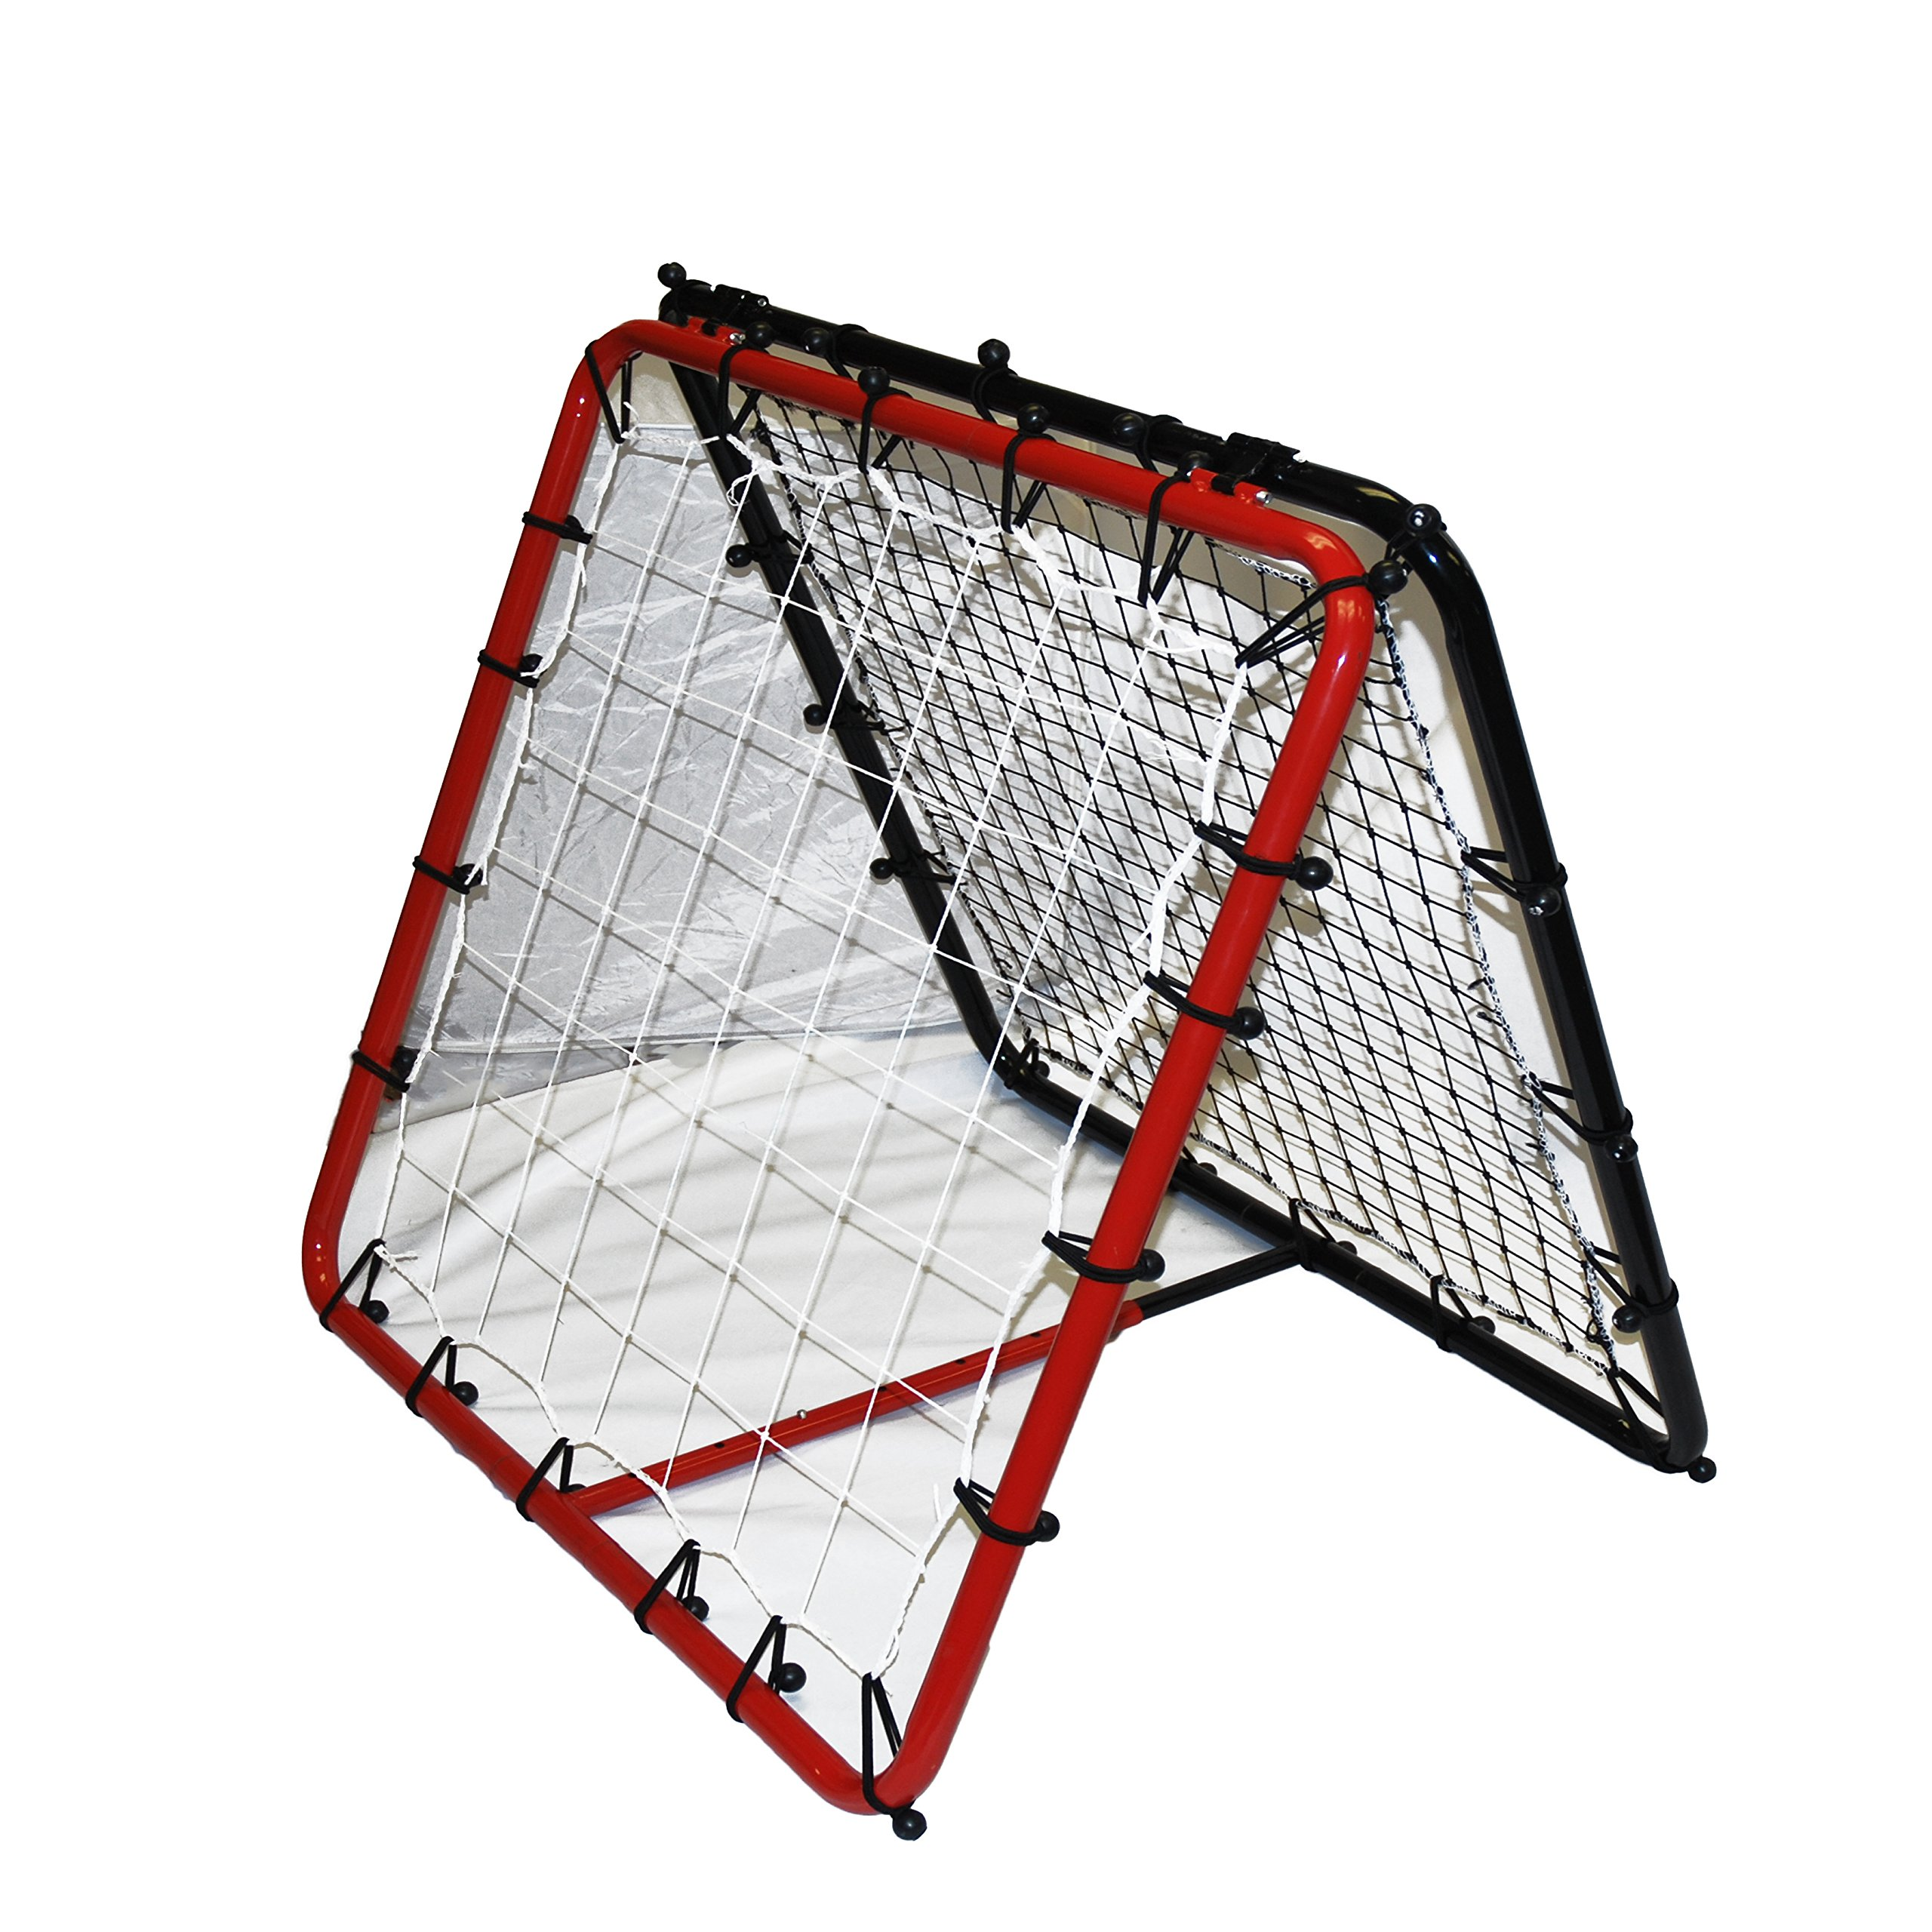 Soccer Innovations Rocket Rebounder Club